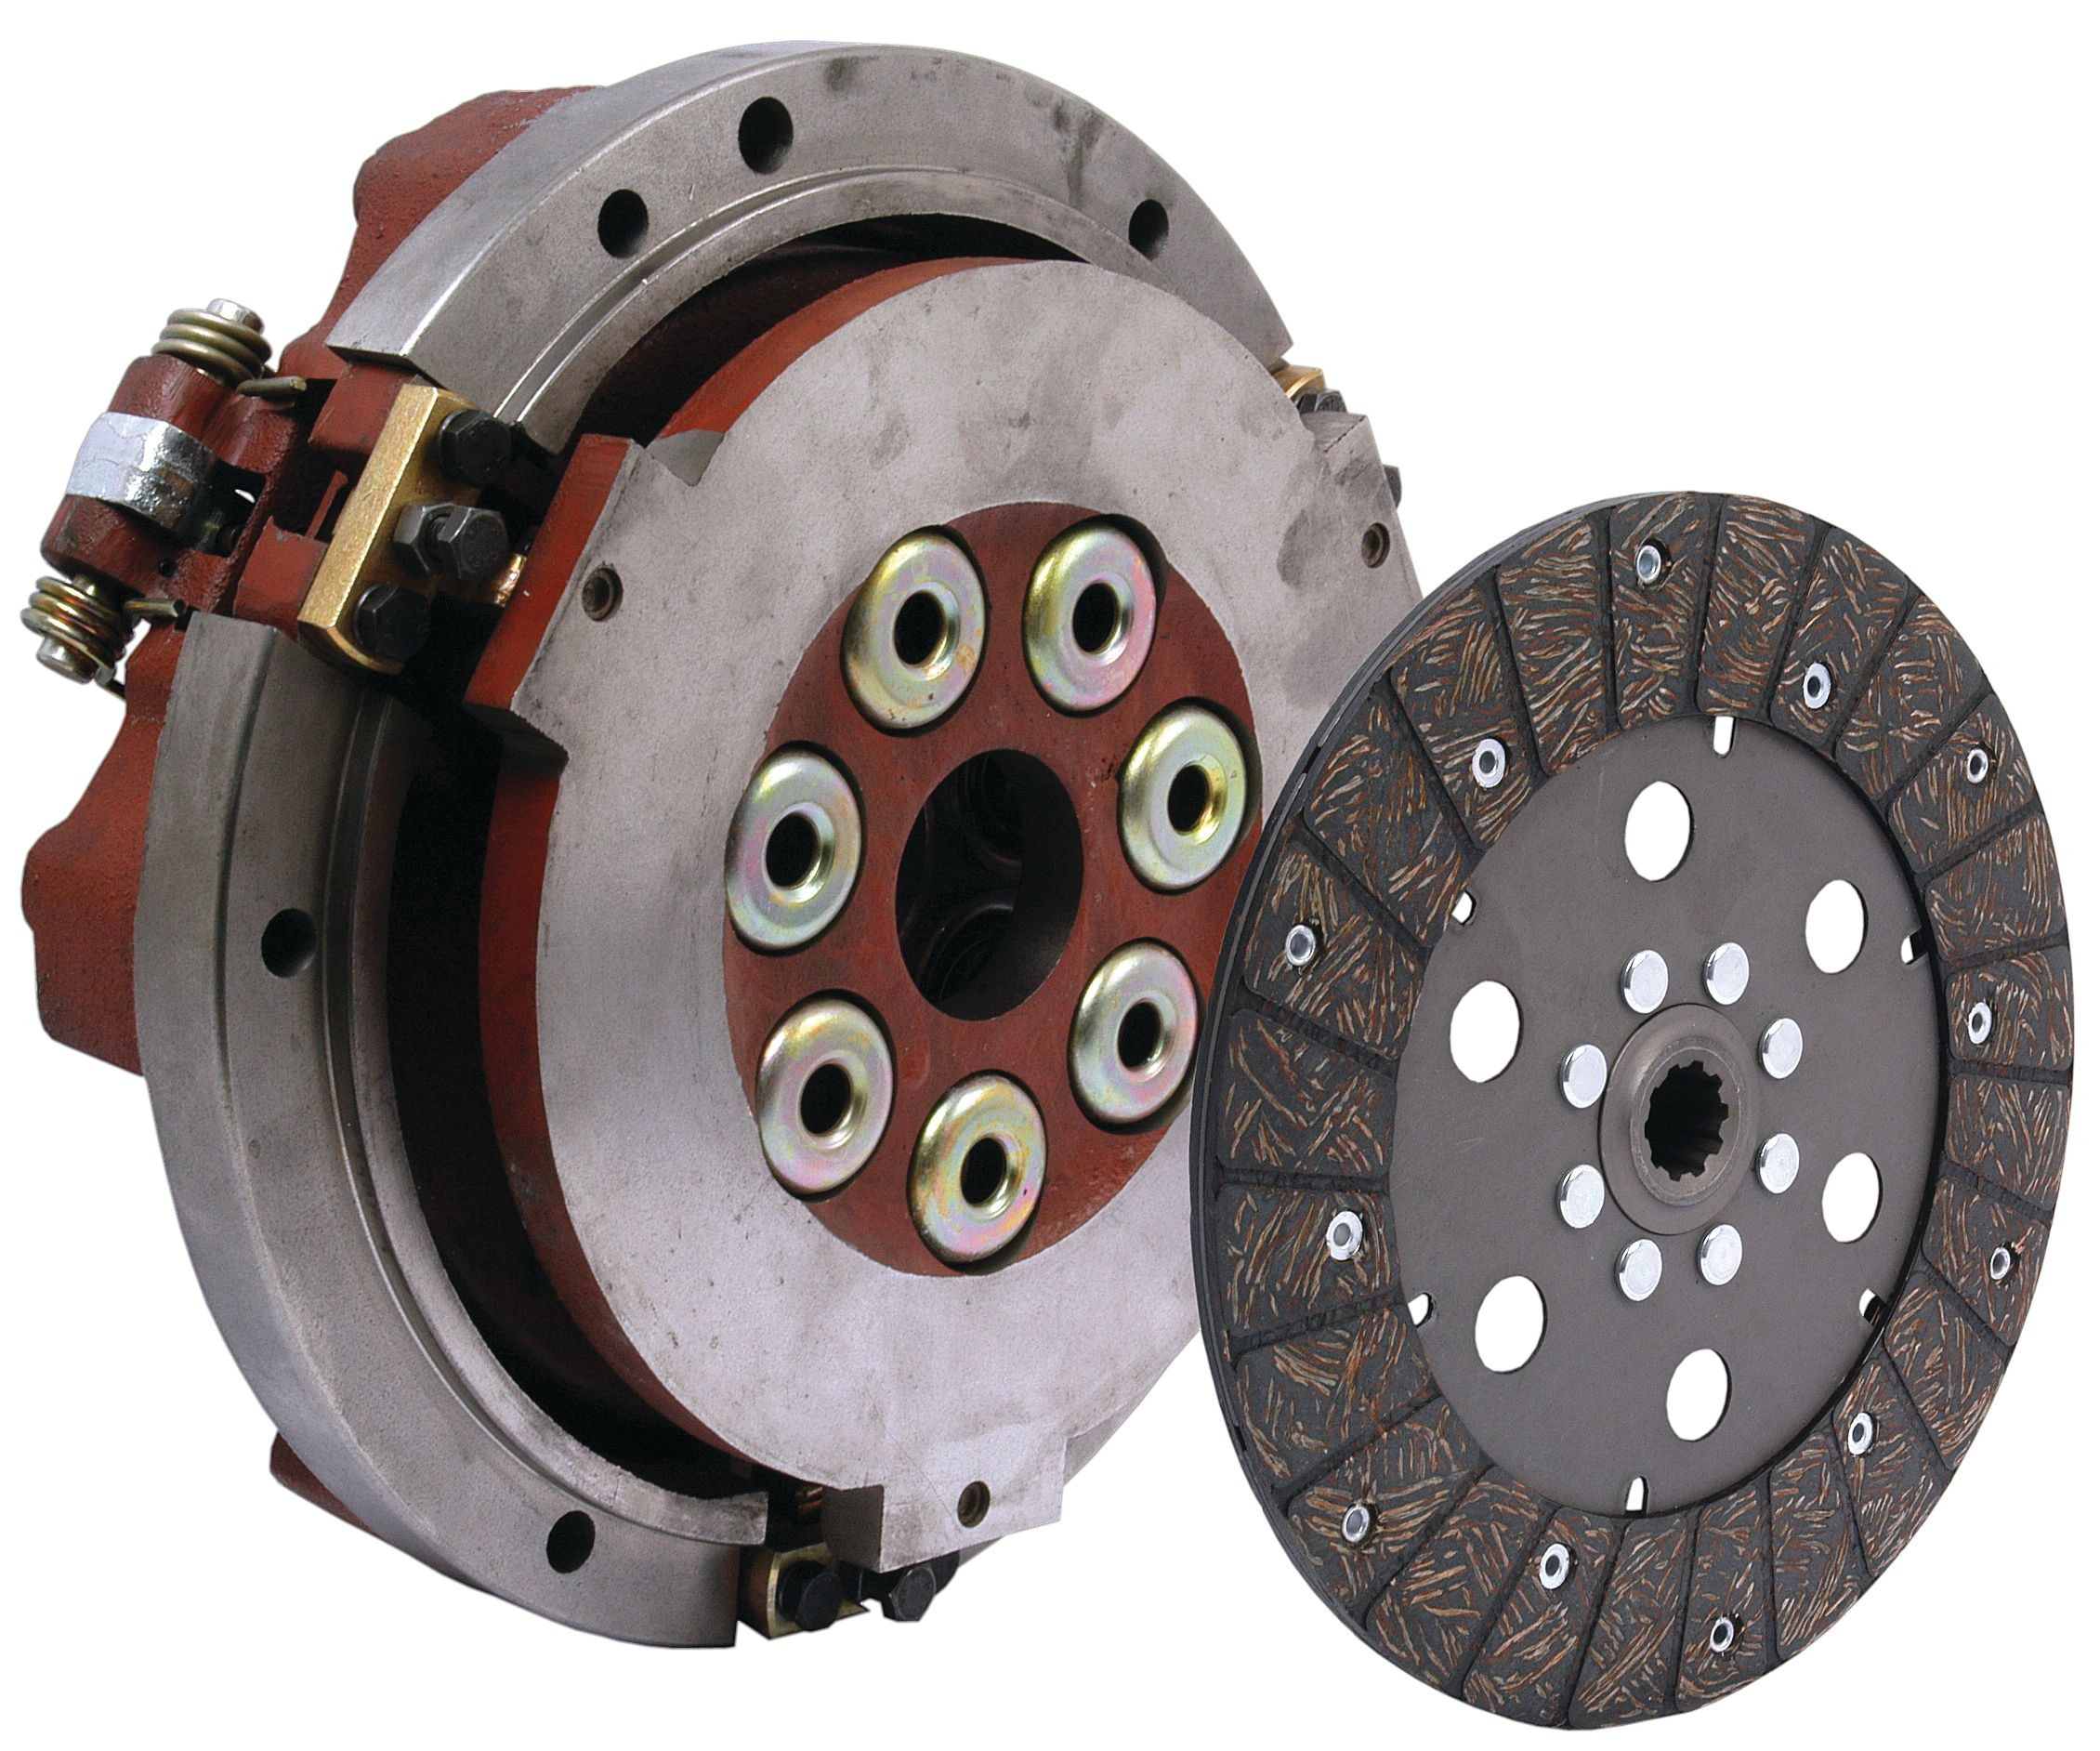 Tractor Clutch Assembly : Long tractor spare parts buy any part